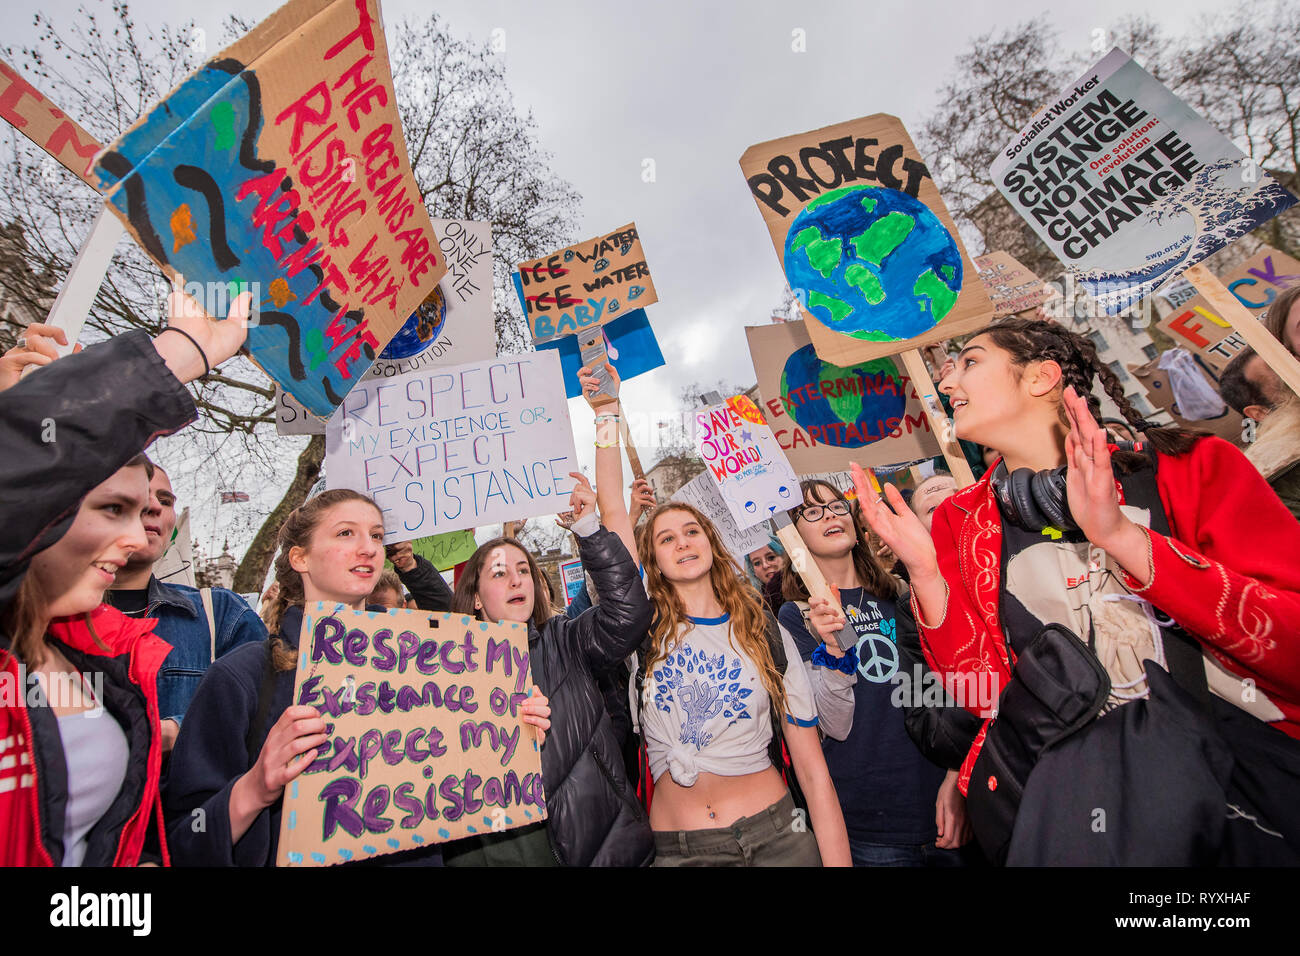 London, UK. 15th Mar 2019. Marching down Whitehall to Downing Street -School students go on strike over the lack of action on climate change. They gather in Parliament square and march on Downing Street, blocking the streets around Westminster for over an hour. Credit: Guy Bell/Alamy Live News Stock Photo